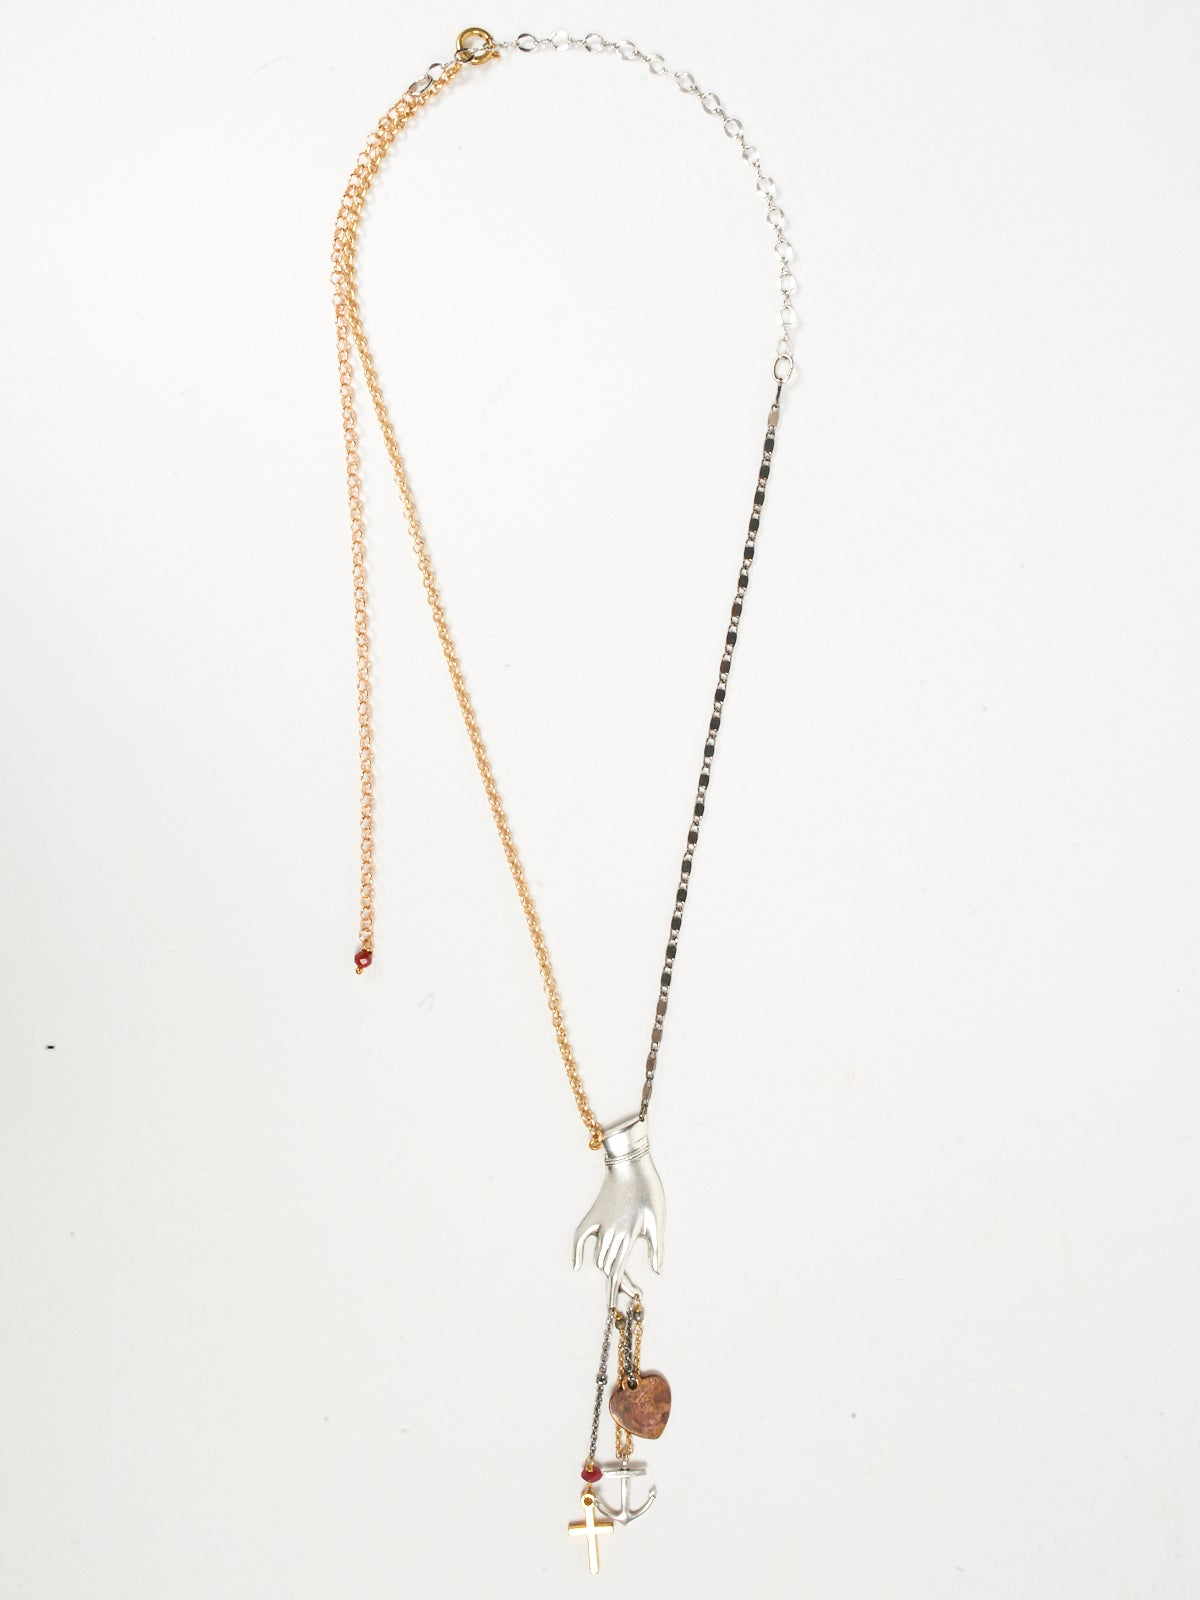 HAND-MADE NECKLACE 3